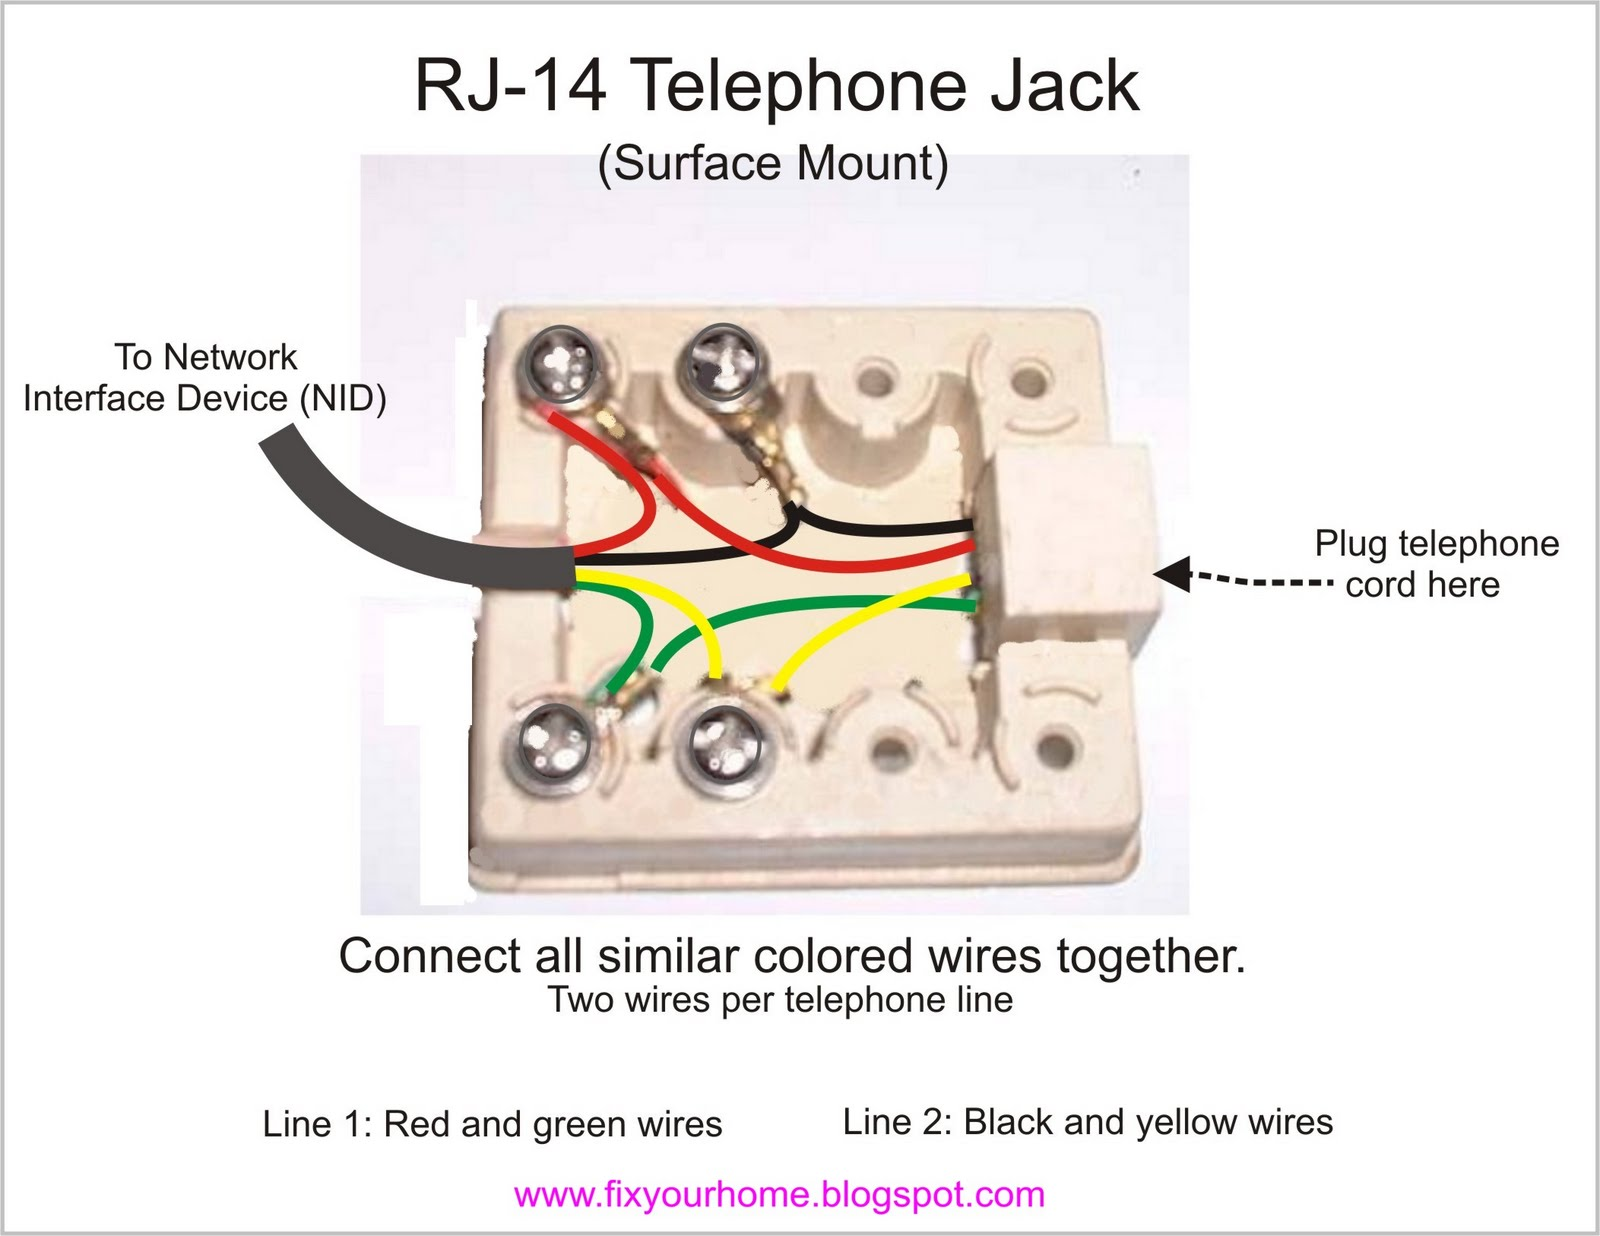 Remarkable Rj 14 Telephone Jack Wiring General Wiring Diagram Data Wiring Digital Resources Bemuashebarightsorg